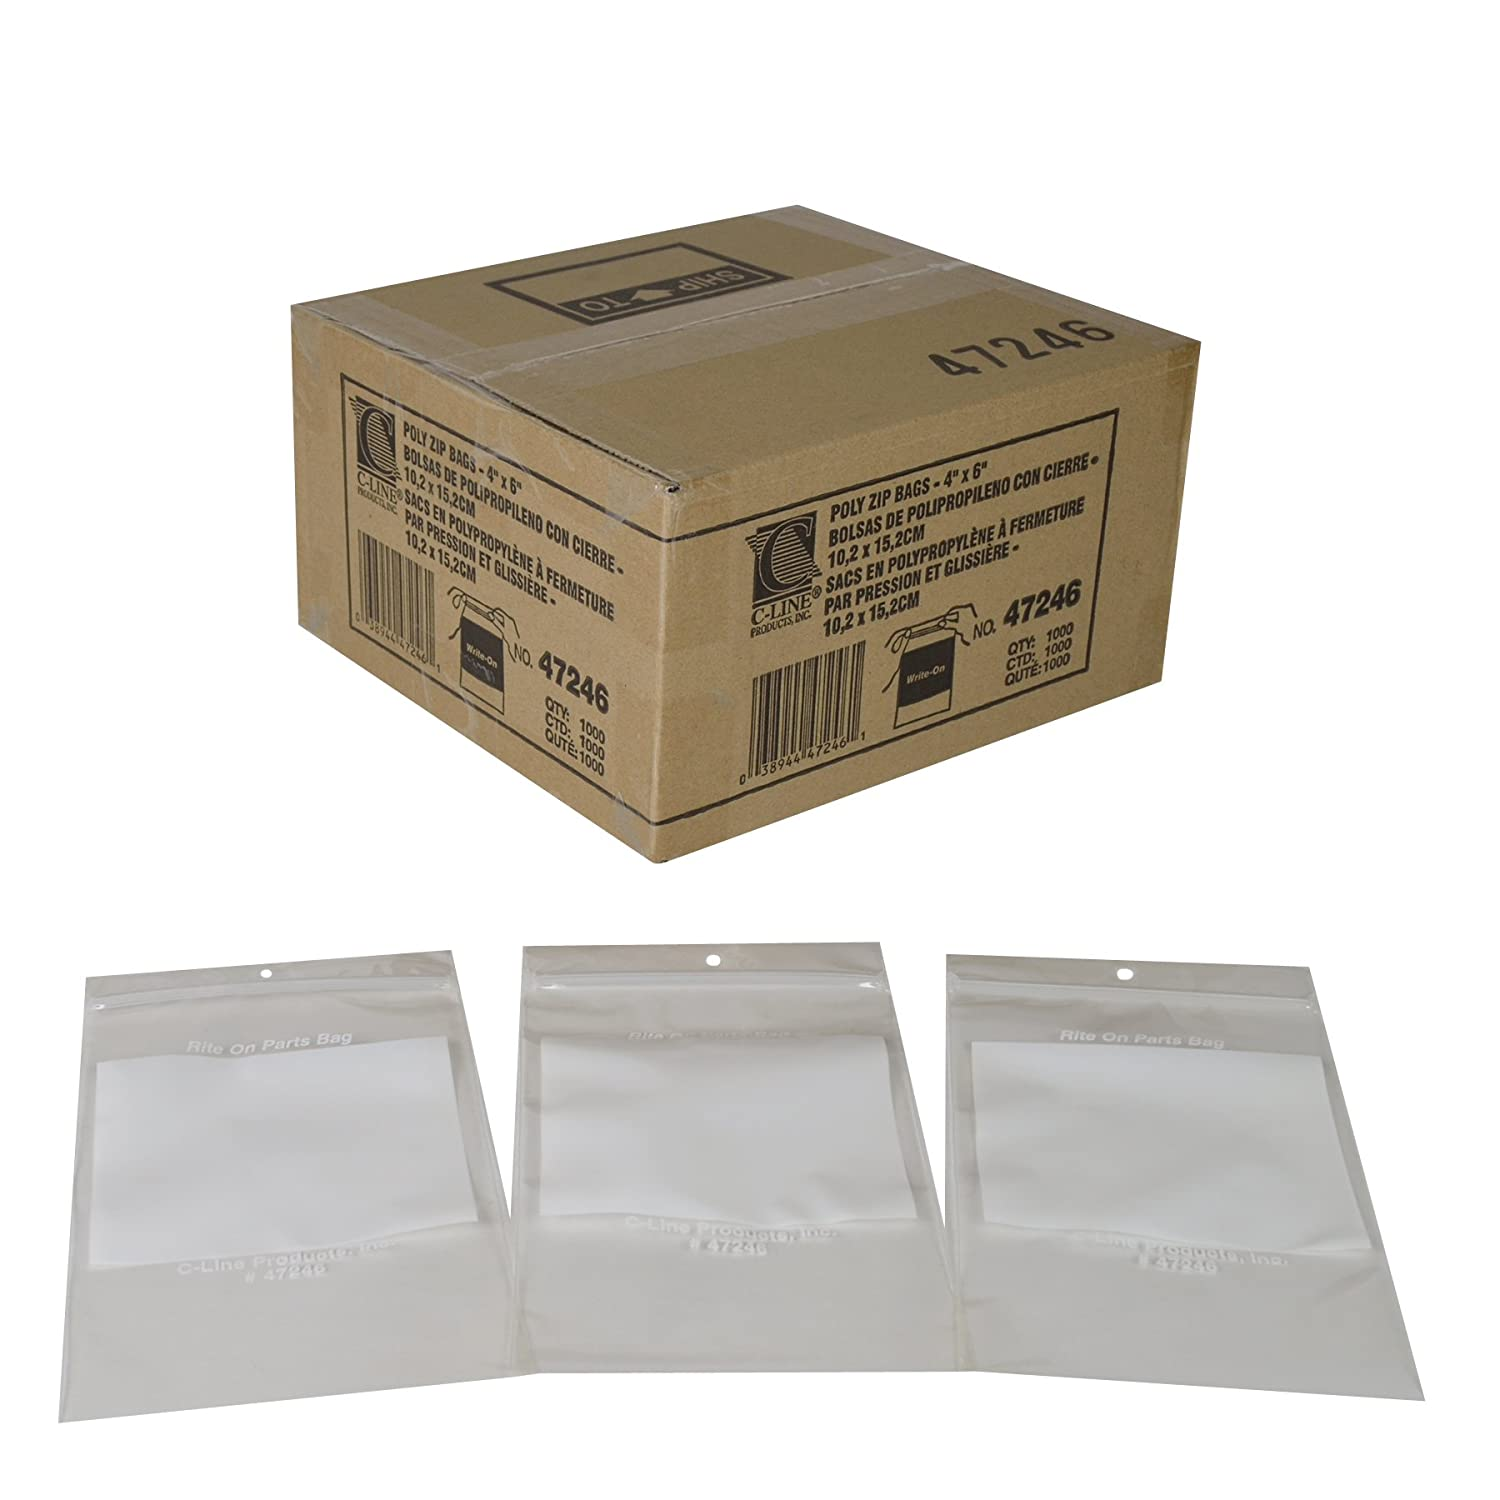 C-Line Write-On Reclosable Small Parts Storage Bags, 4 x 6 Inches, 1000 per Box (47246)